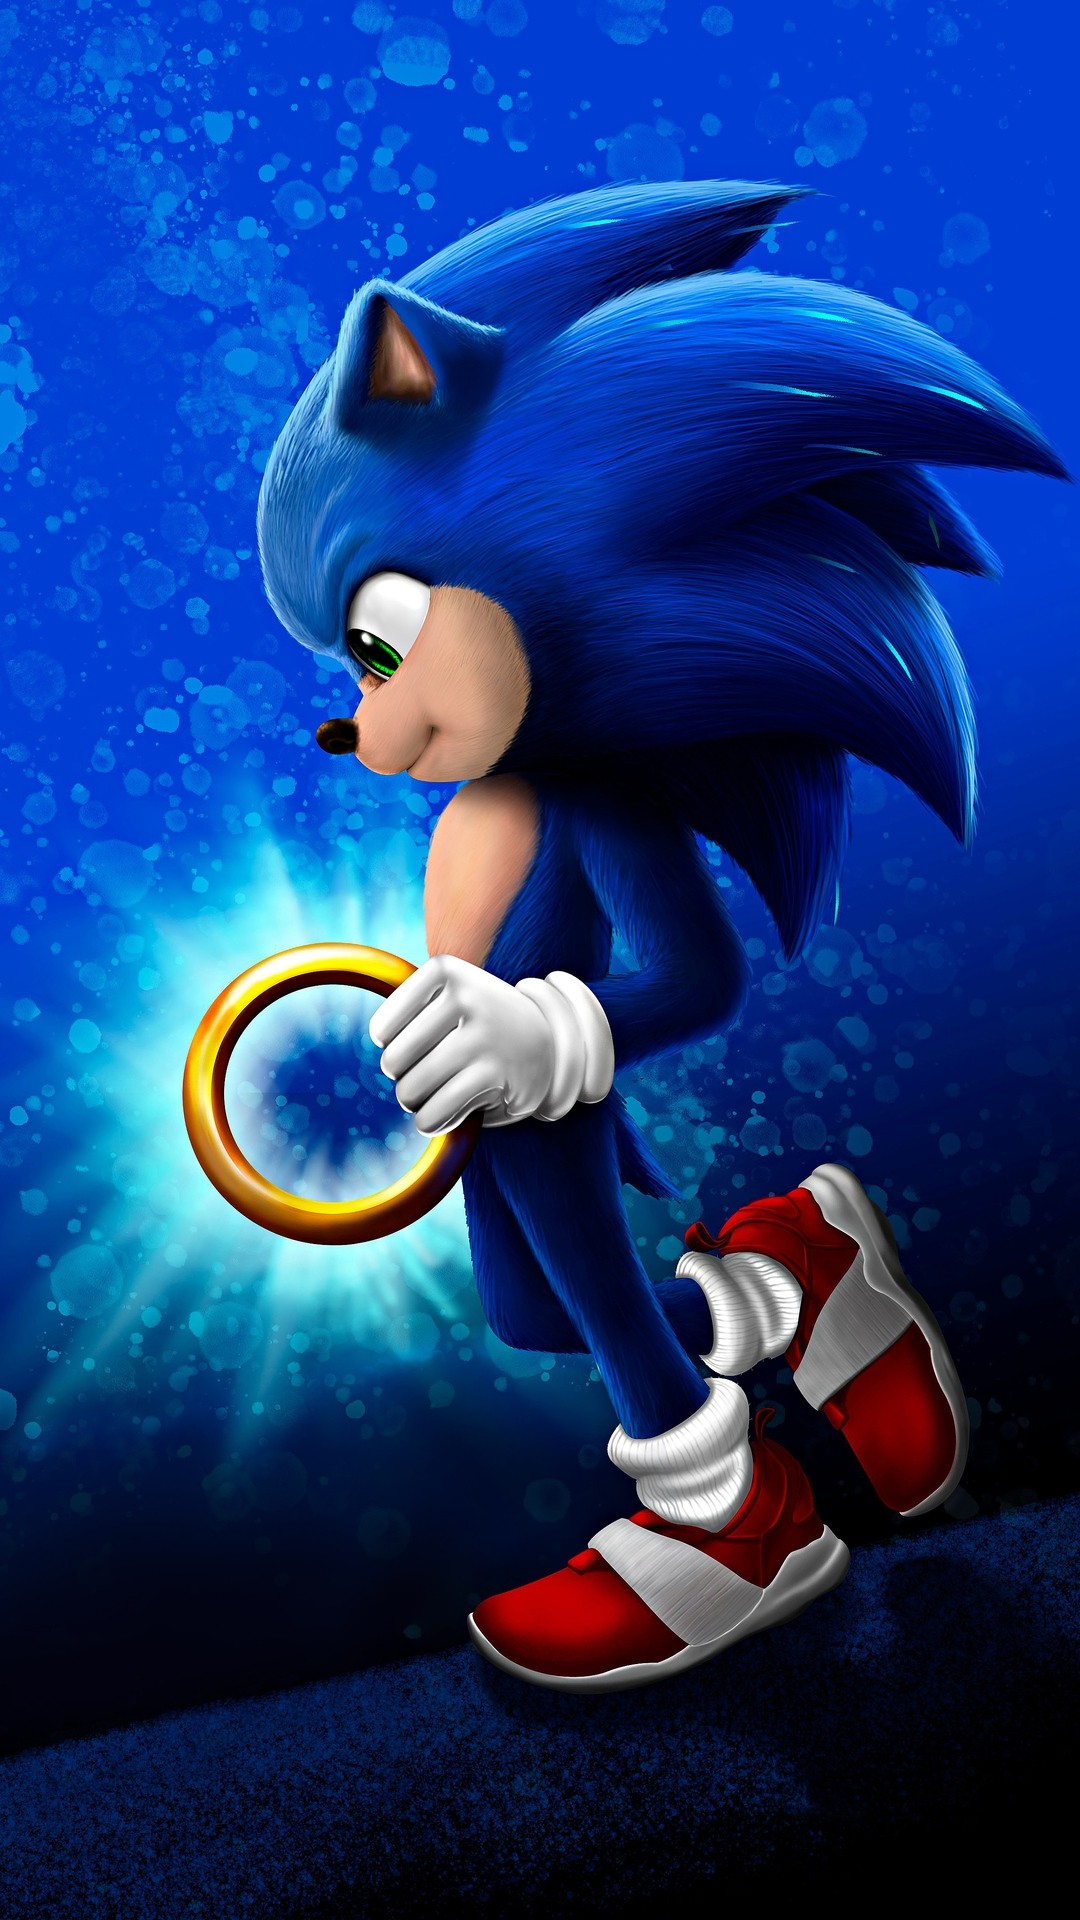 Sonic The Hedgehog iphone 8 wallpaper